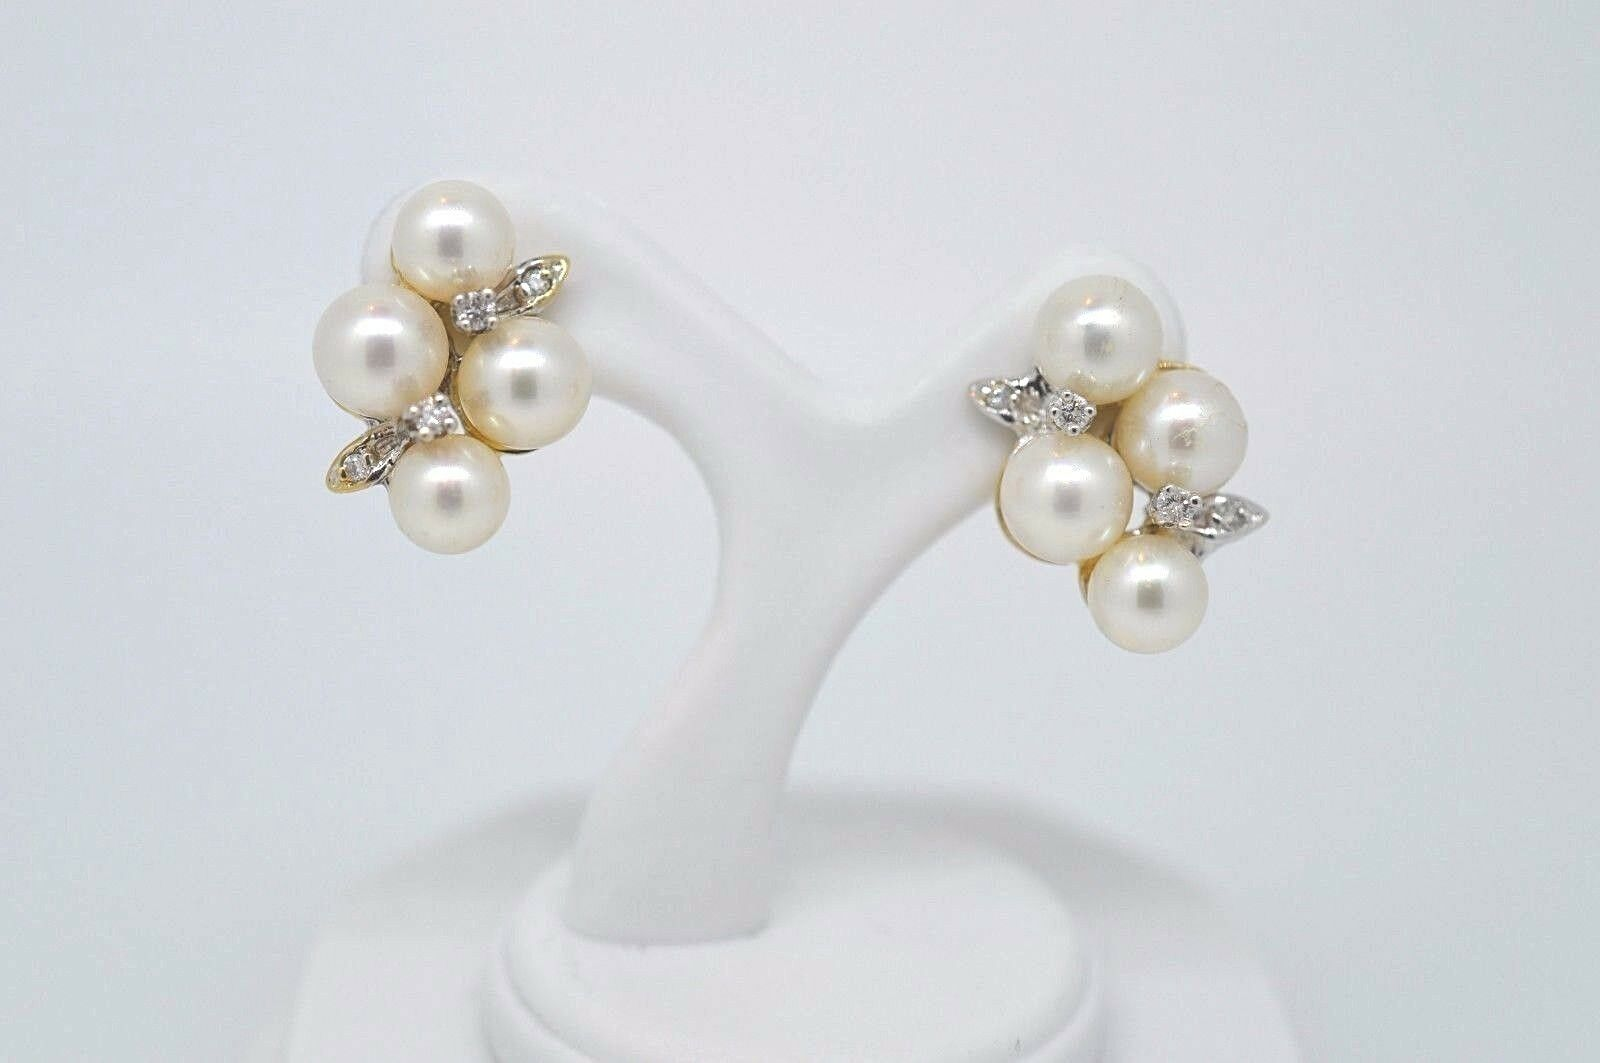 14k Yellow gold & Pearl Cluster Earrings with Diamonds